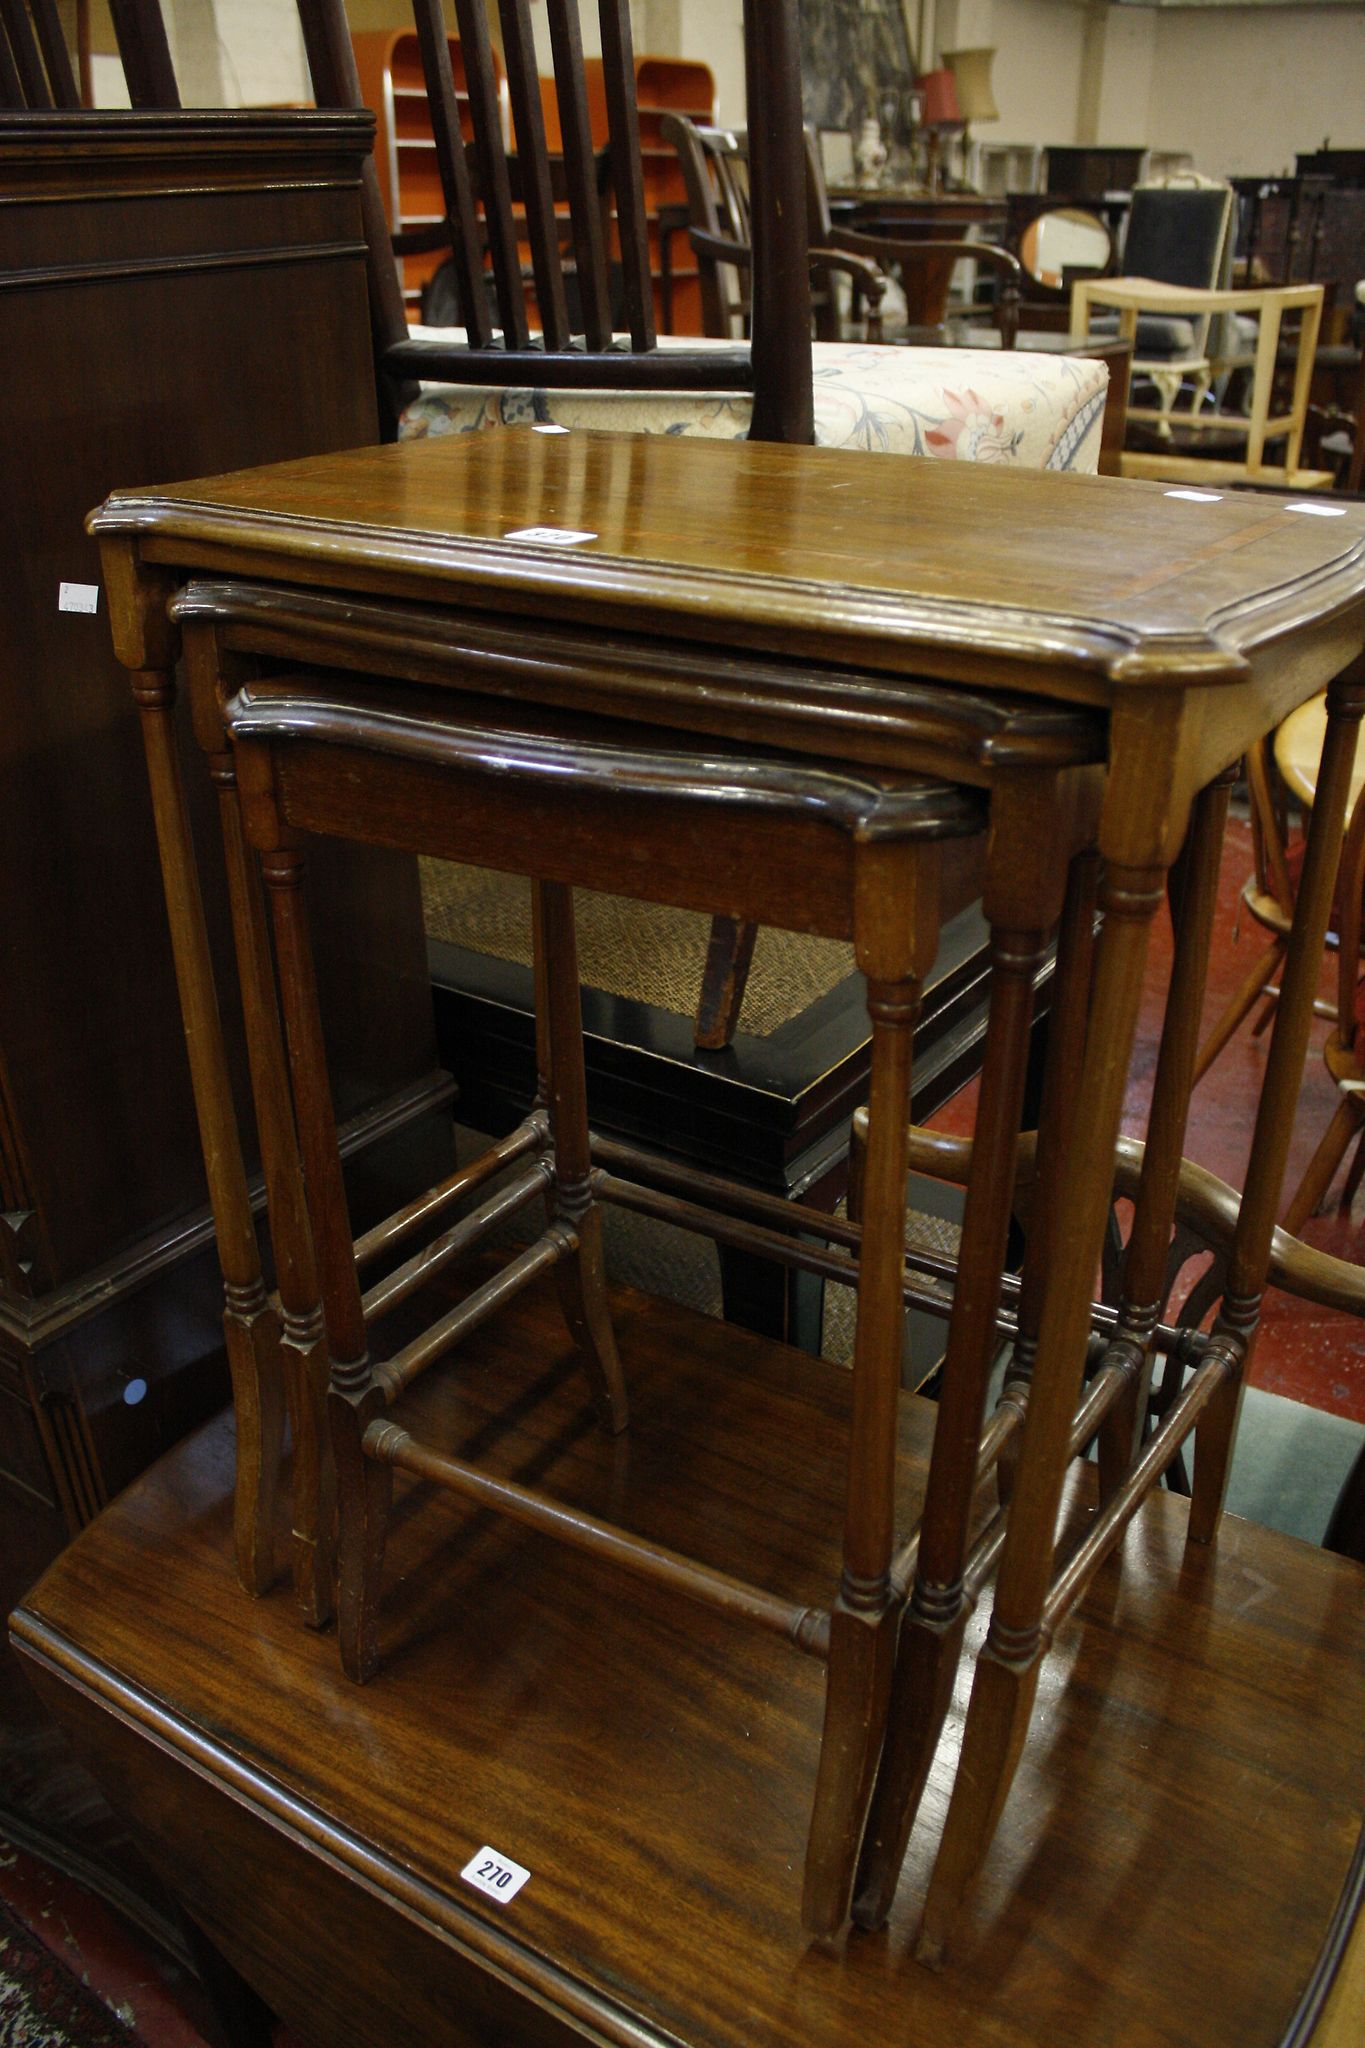 A nest of three Edwardian mahogany tables with rosewood banding